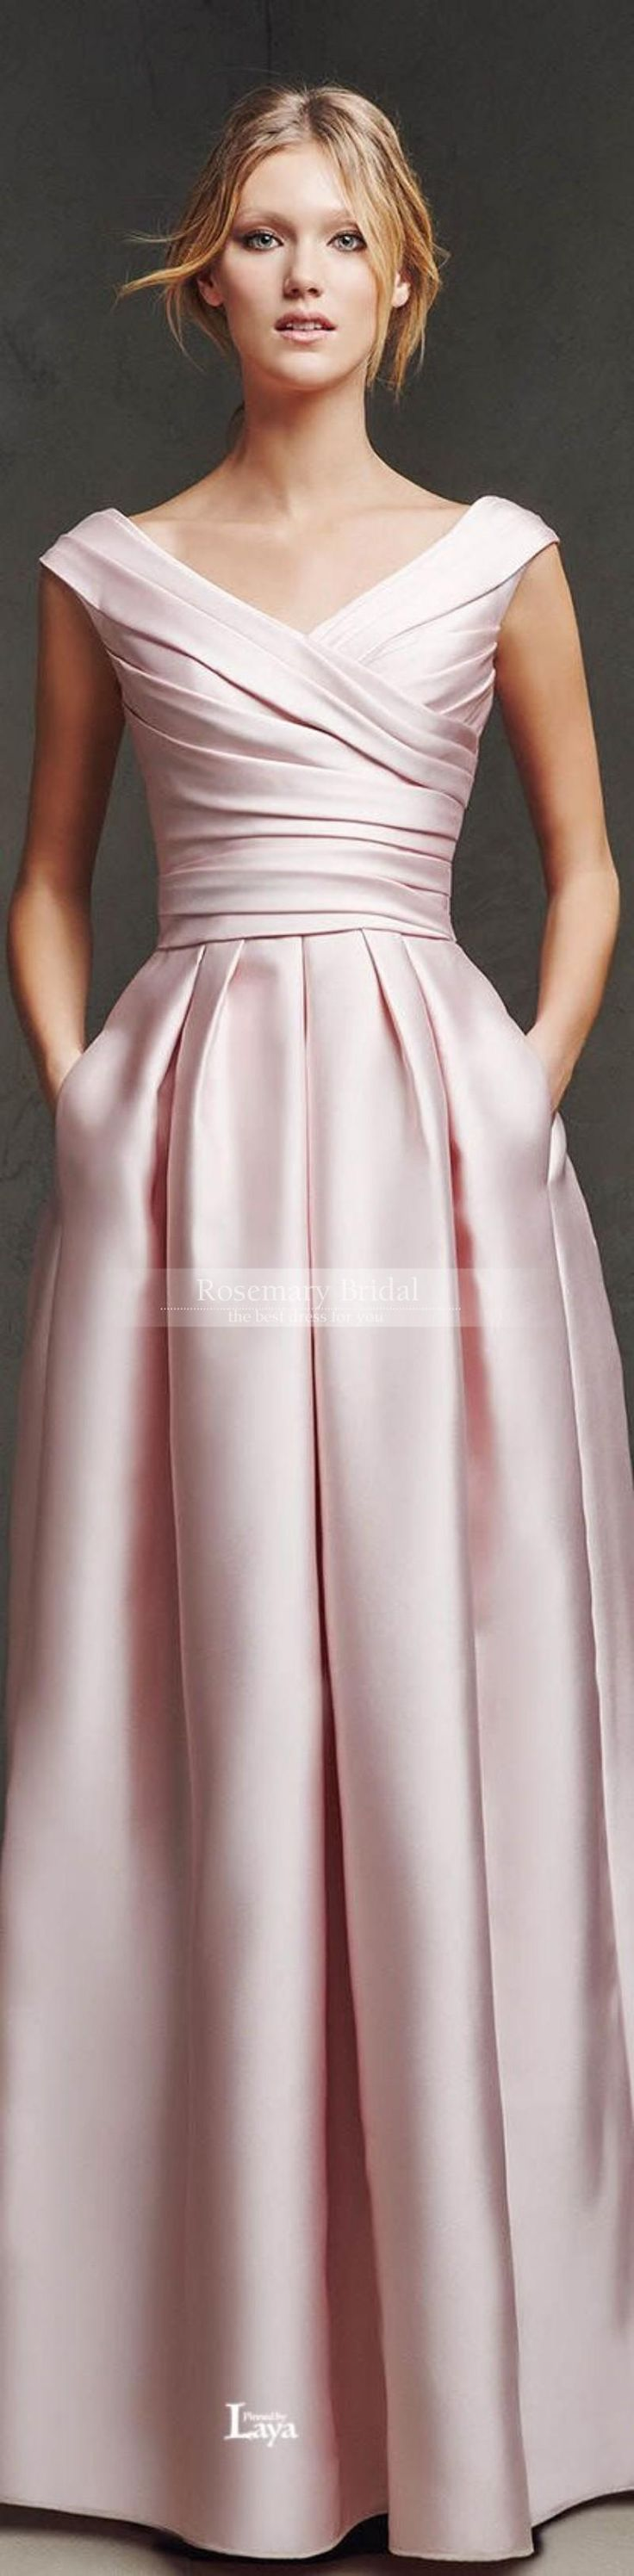 Best 20 plus size bridesmaid ideas on pinterest cheap long best 20 plus size bridesmaid ideas on pinterest cheap long dresses pink bridesmaid dresses and long chiffon bridesmaid dresses ombrellifo Image collections